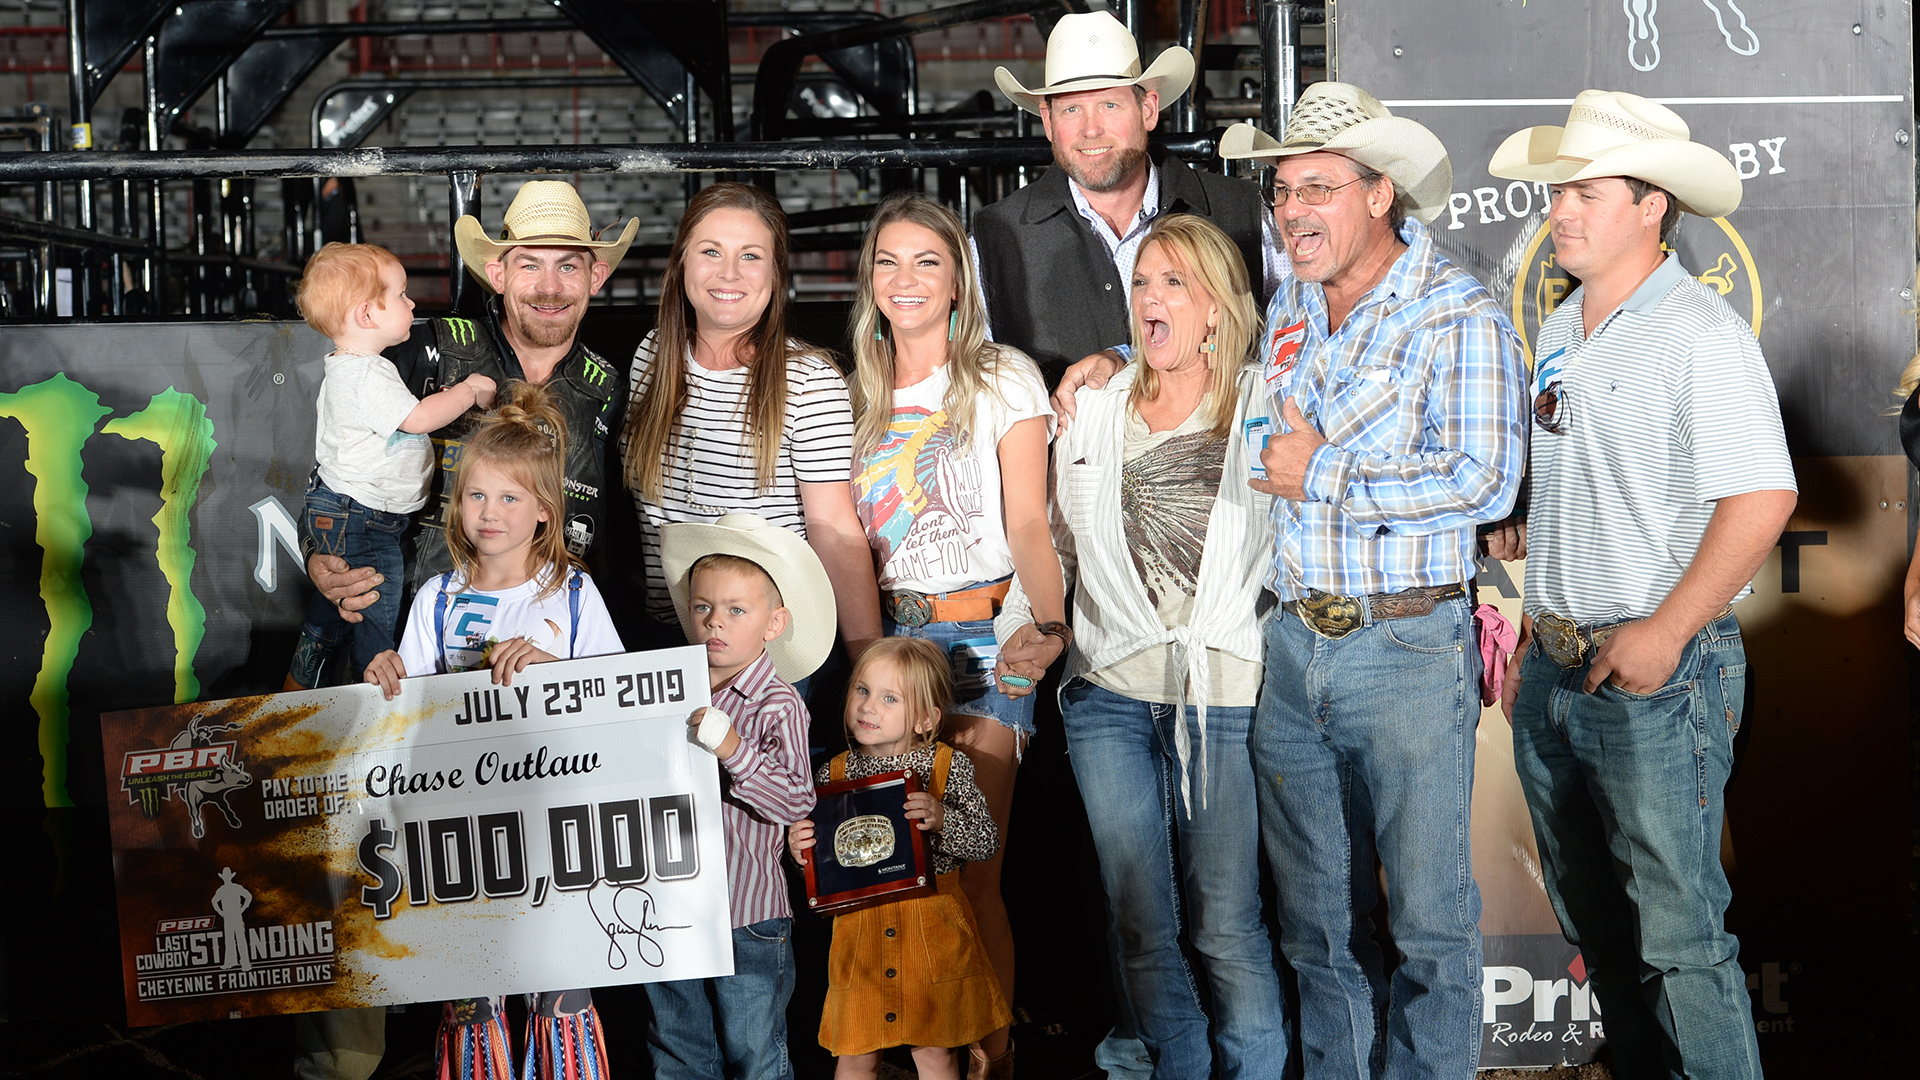 Outlaw: 'This has been harder for my family than it is for me'